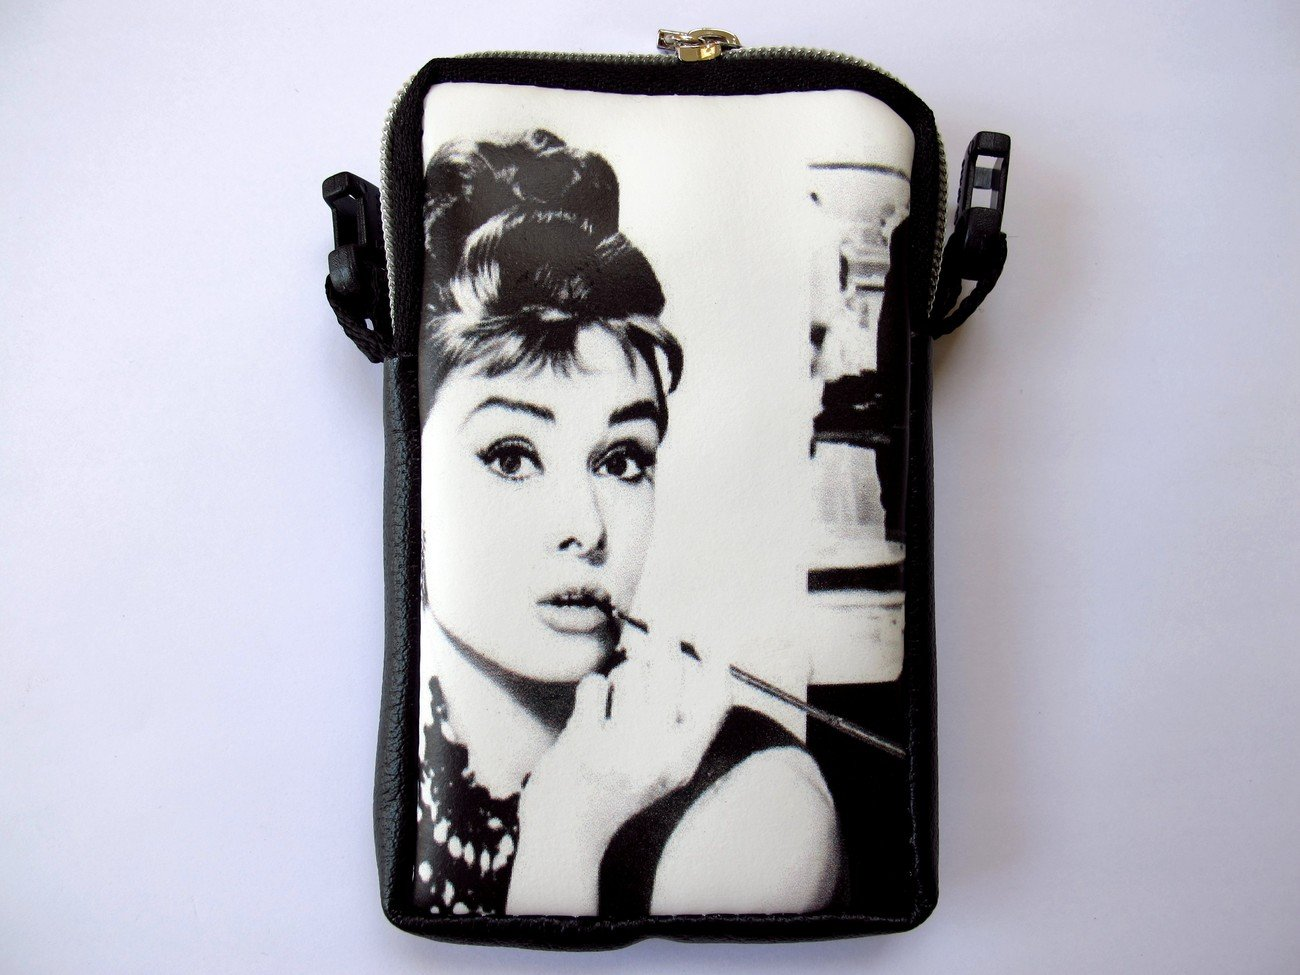 Audrey Hepburn Tiffany's Mobile Phone MP3 MP4 iPod Case Pouch Bag